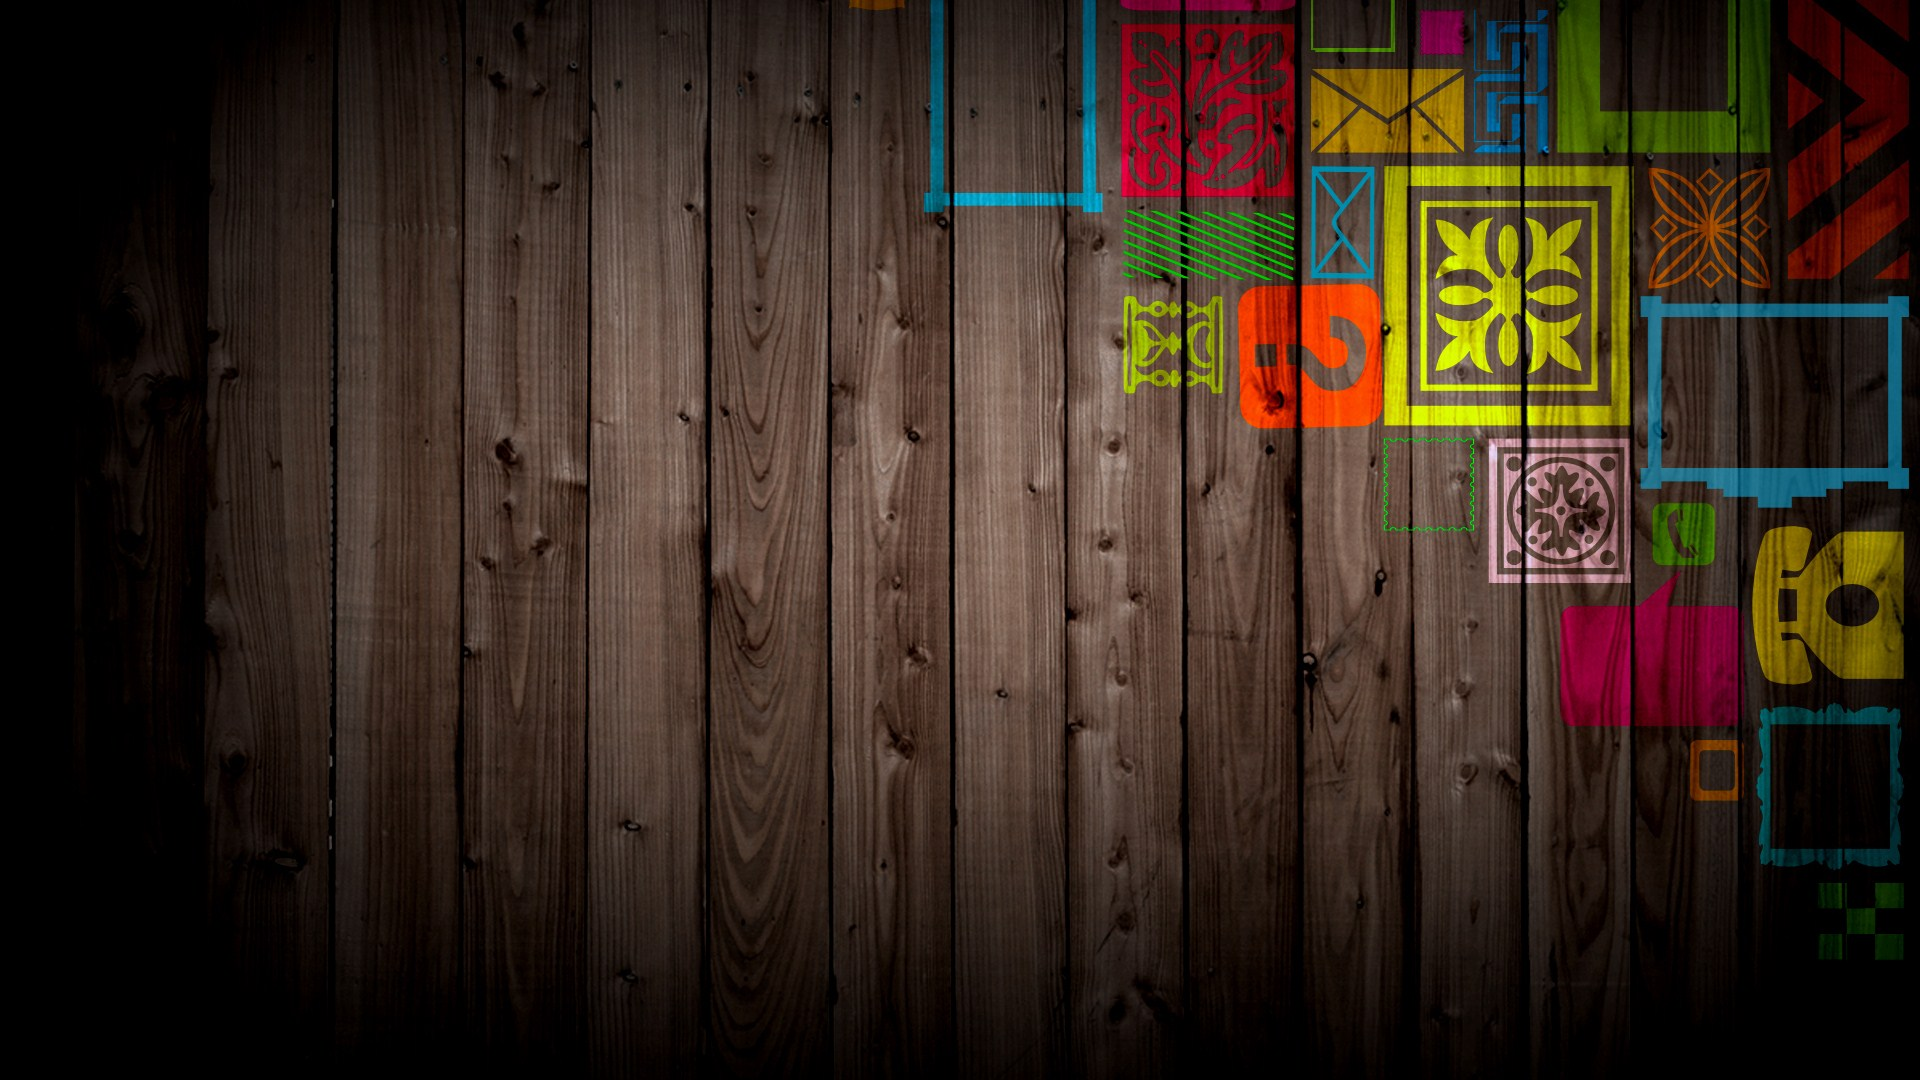 Cool Wooden Wall   Cool Twitter Backgrounds 1920x1080